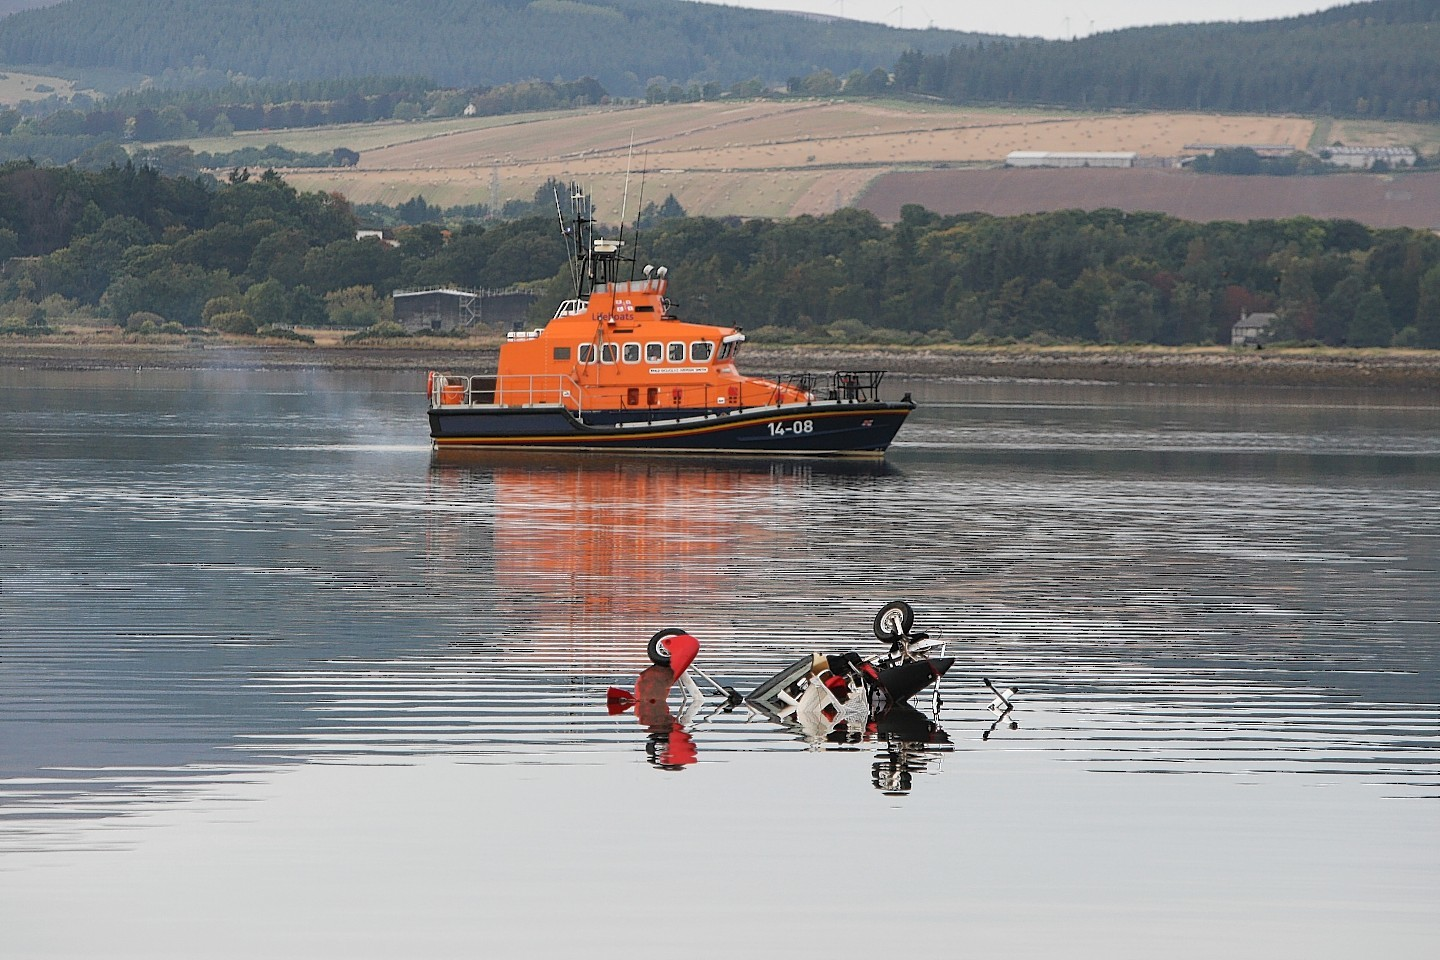 The wreckage of a microlight slowly sinking into the Cromarty Firth